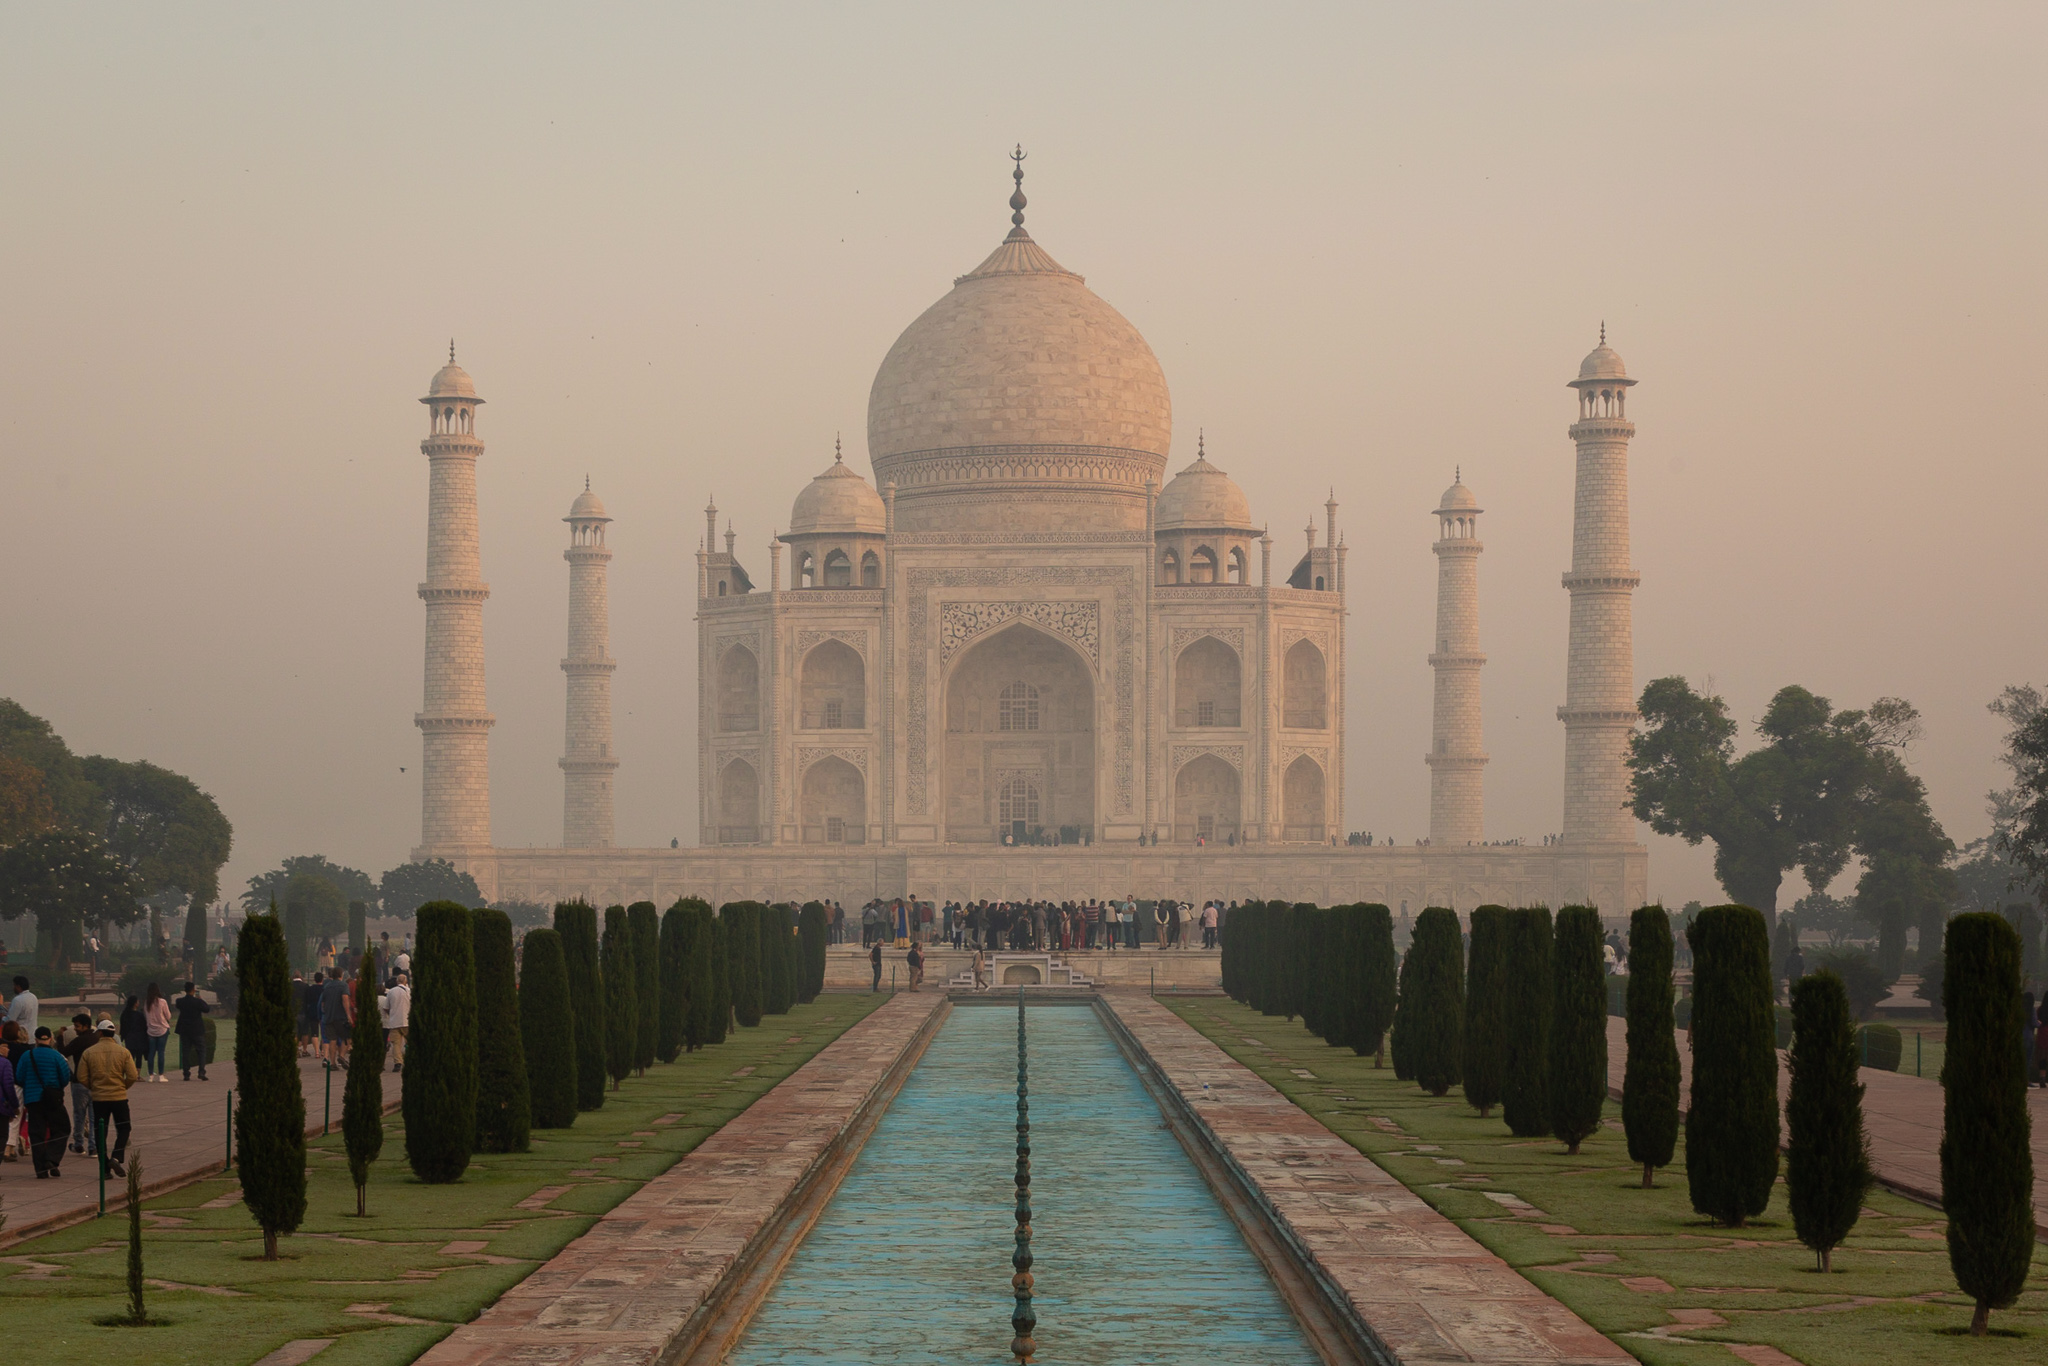 Taj Mahal & dry reflecting pool